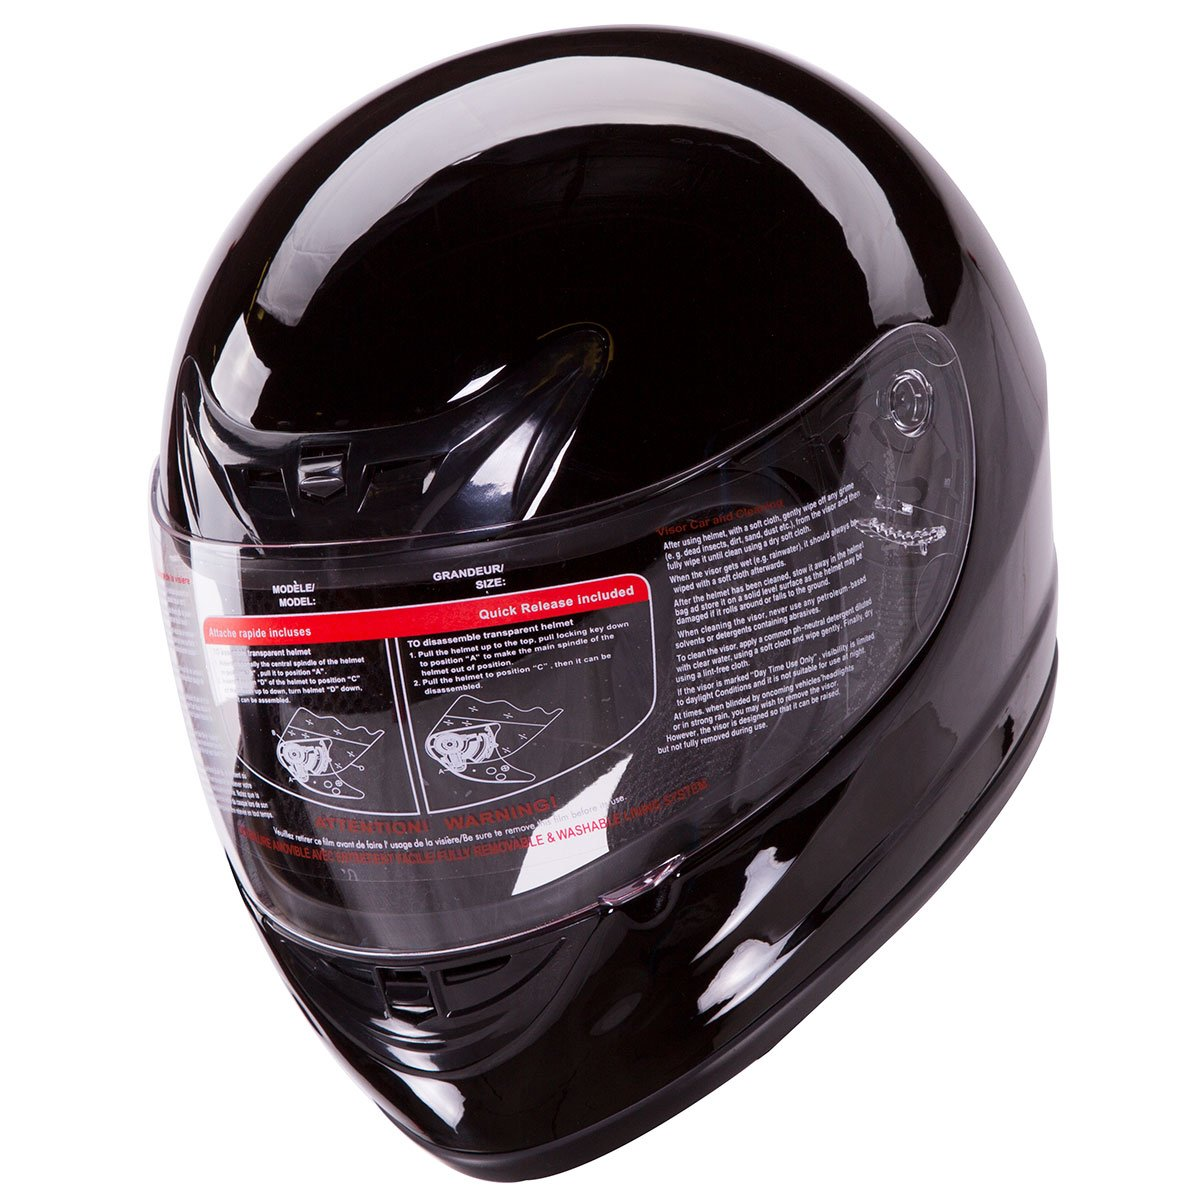 Amazon.es: 901-bk-pl brillo negro Full Face casco de moto, diseño de lunares + 2 visor